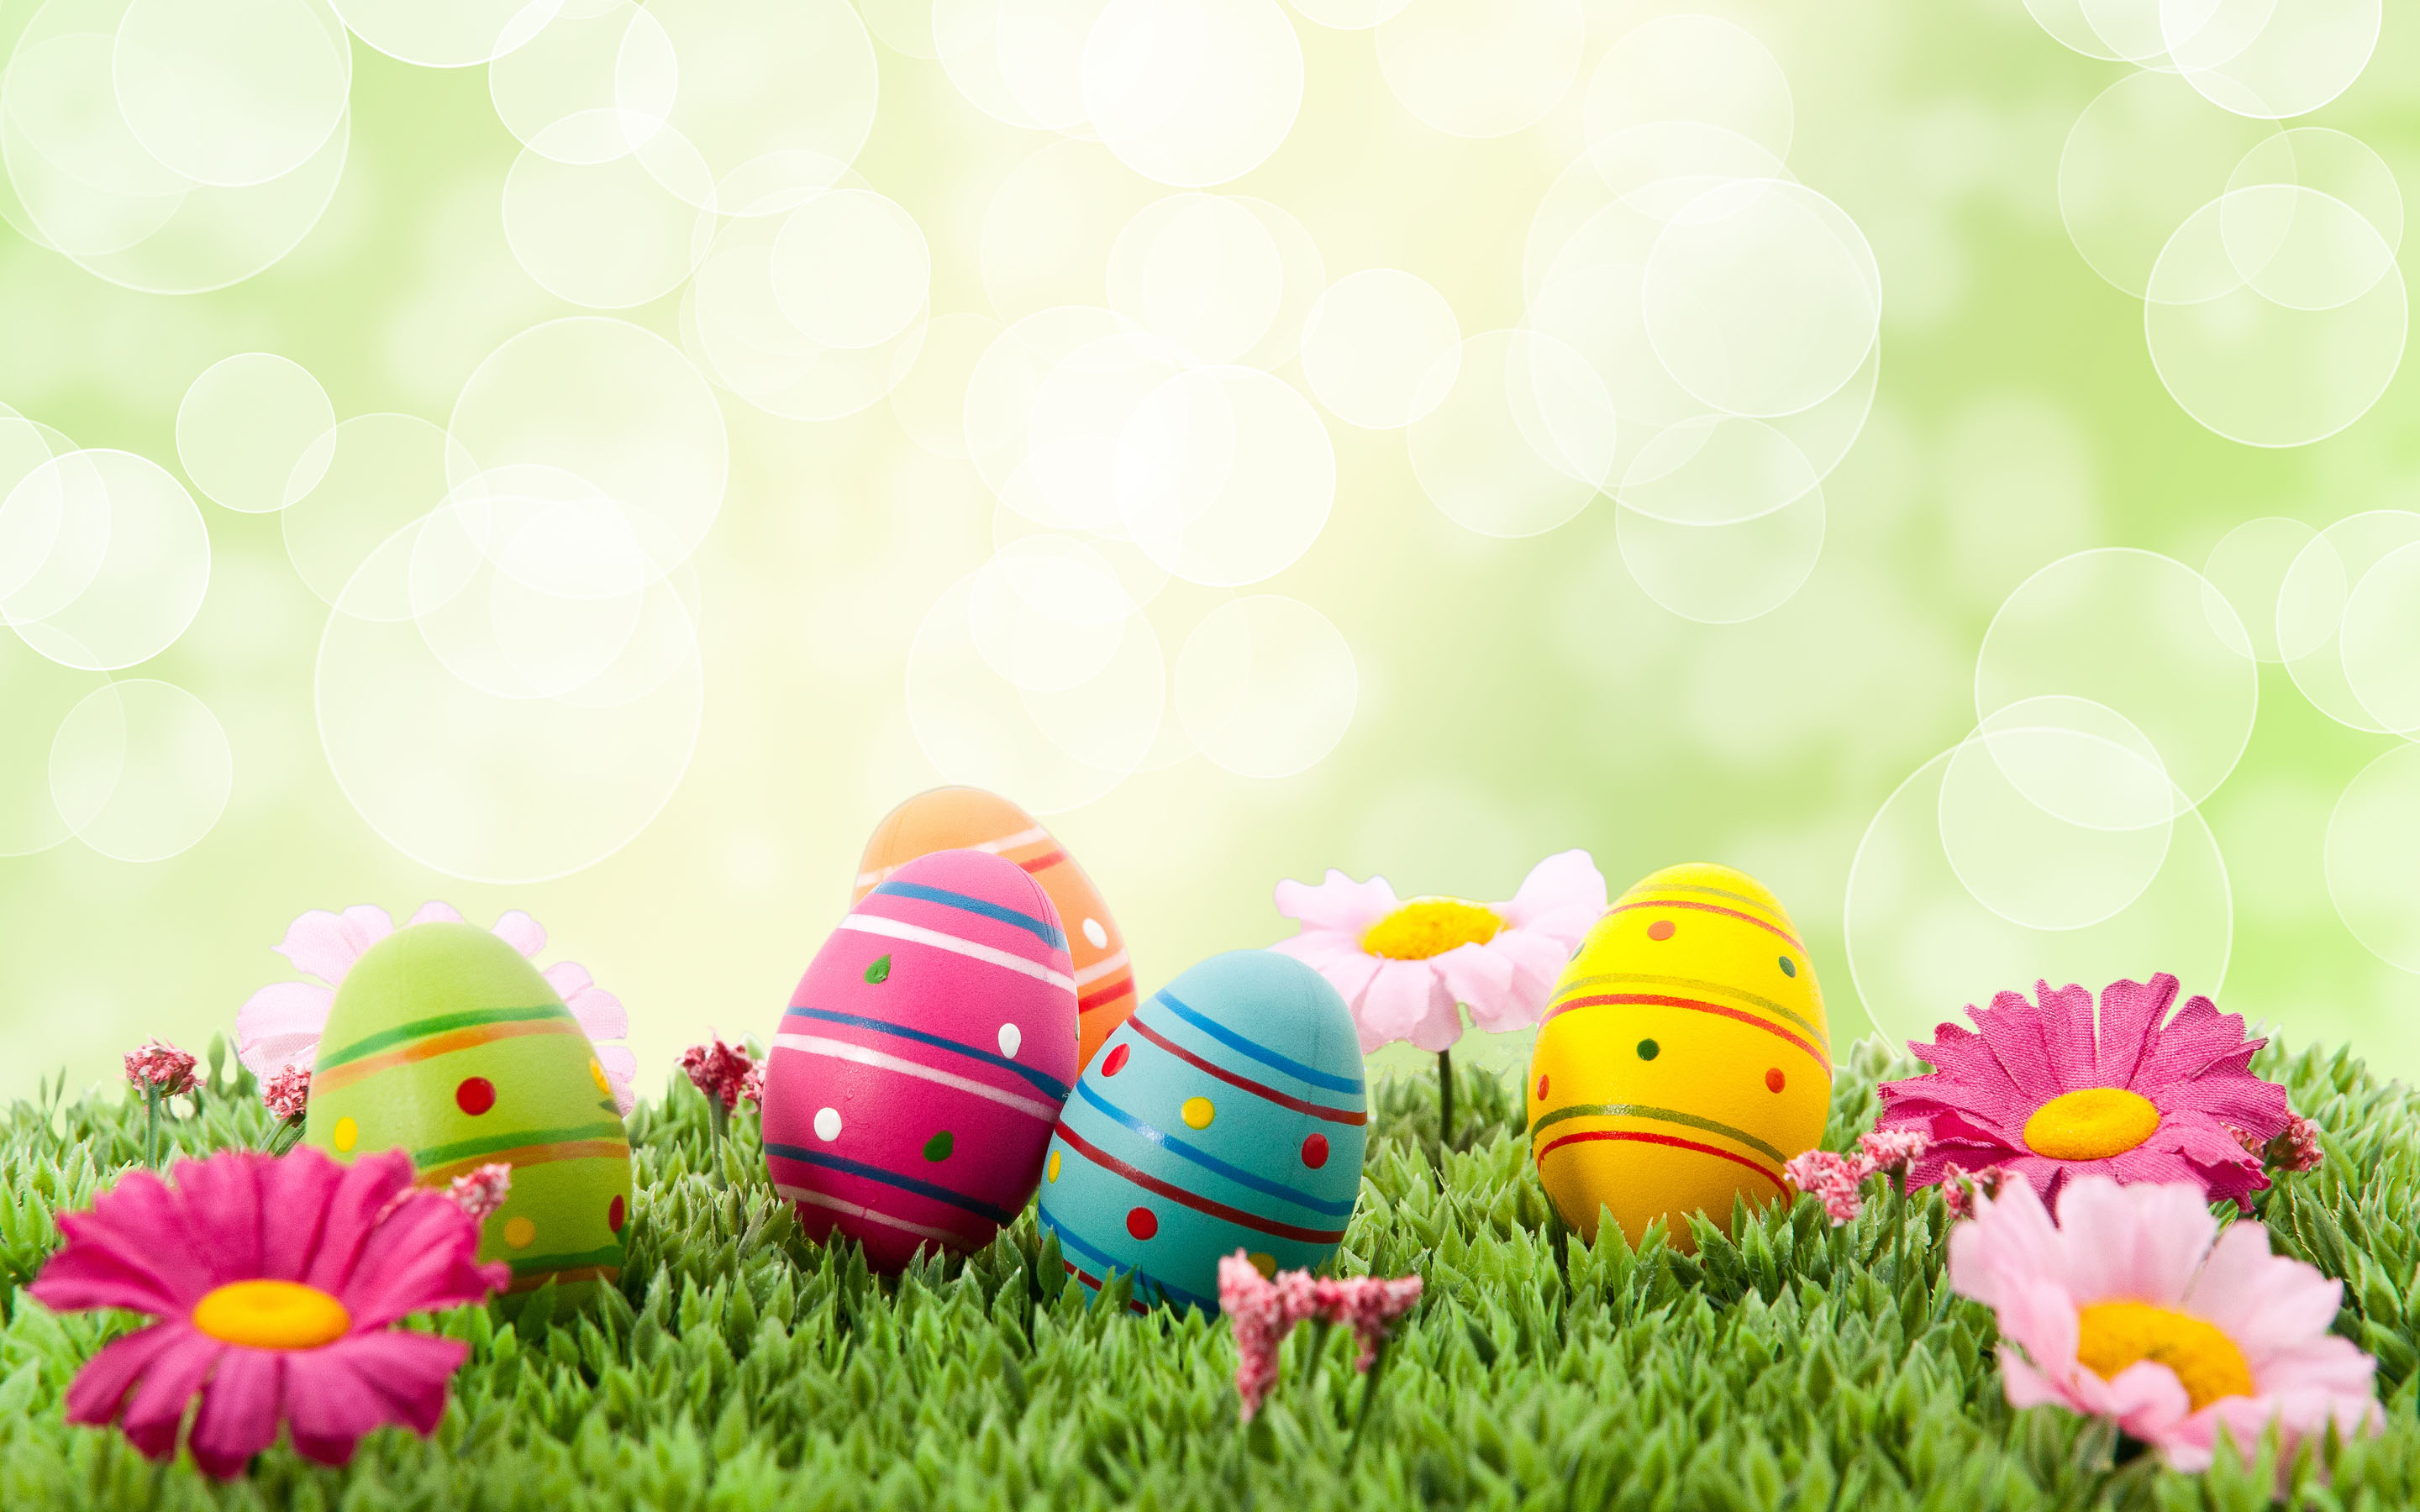 Easter wallpaper 2880x1800 52965 2880x1800